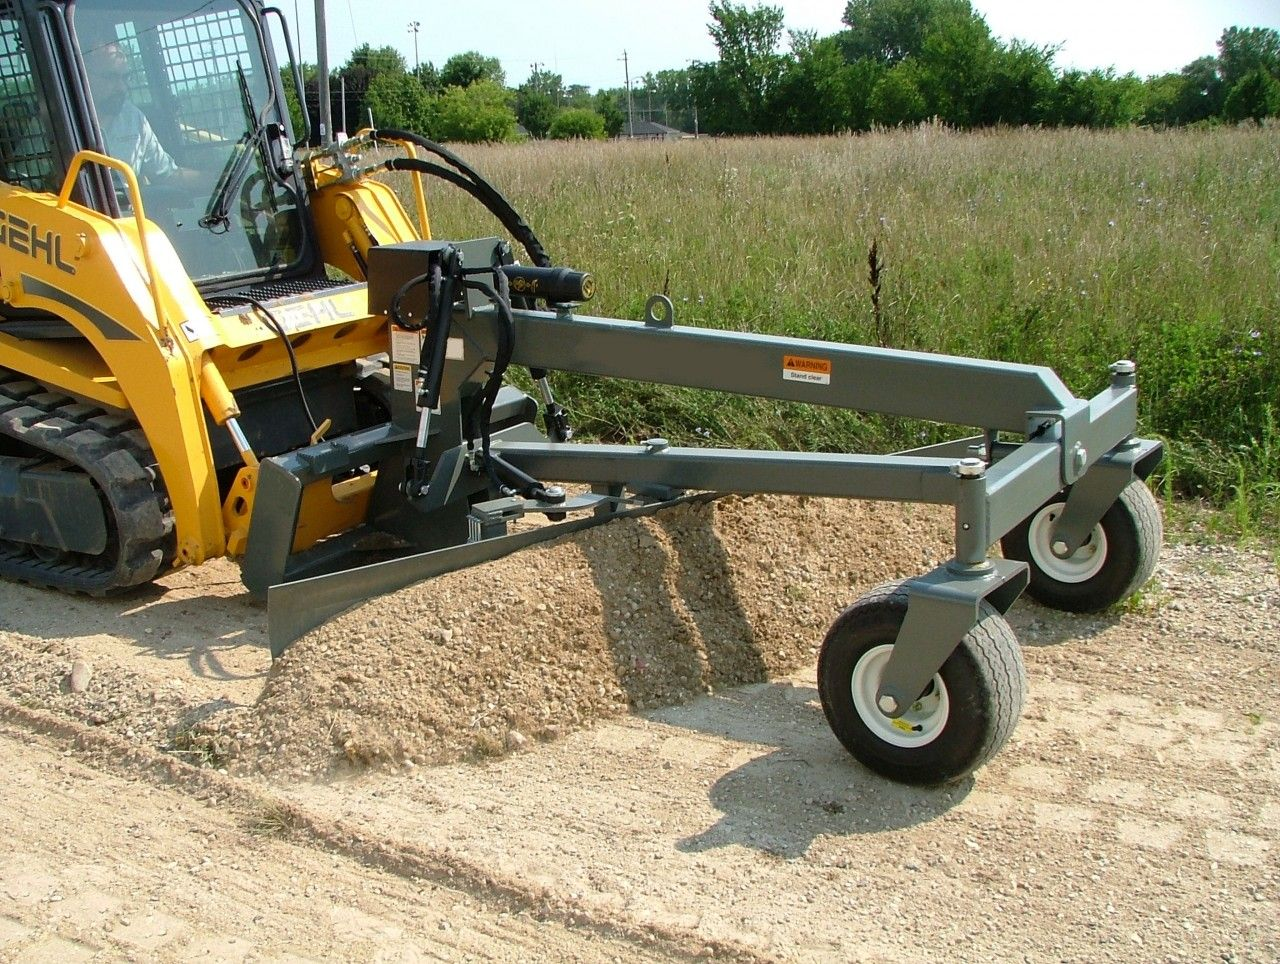 Details about Skid Steer Grader Attachment With Optional